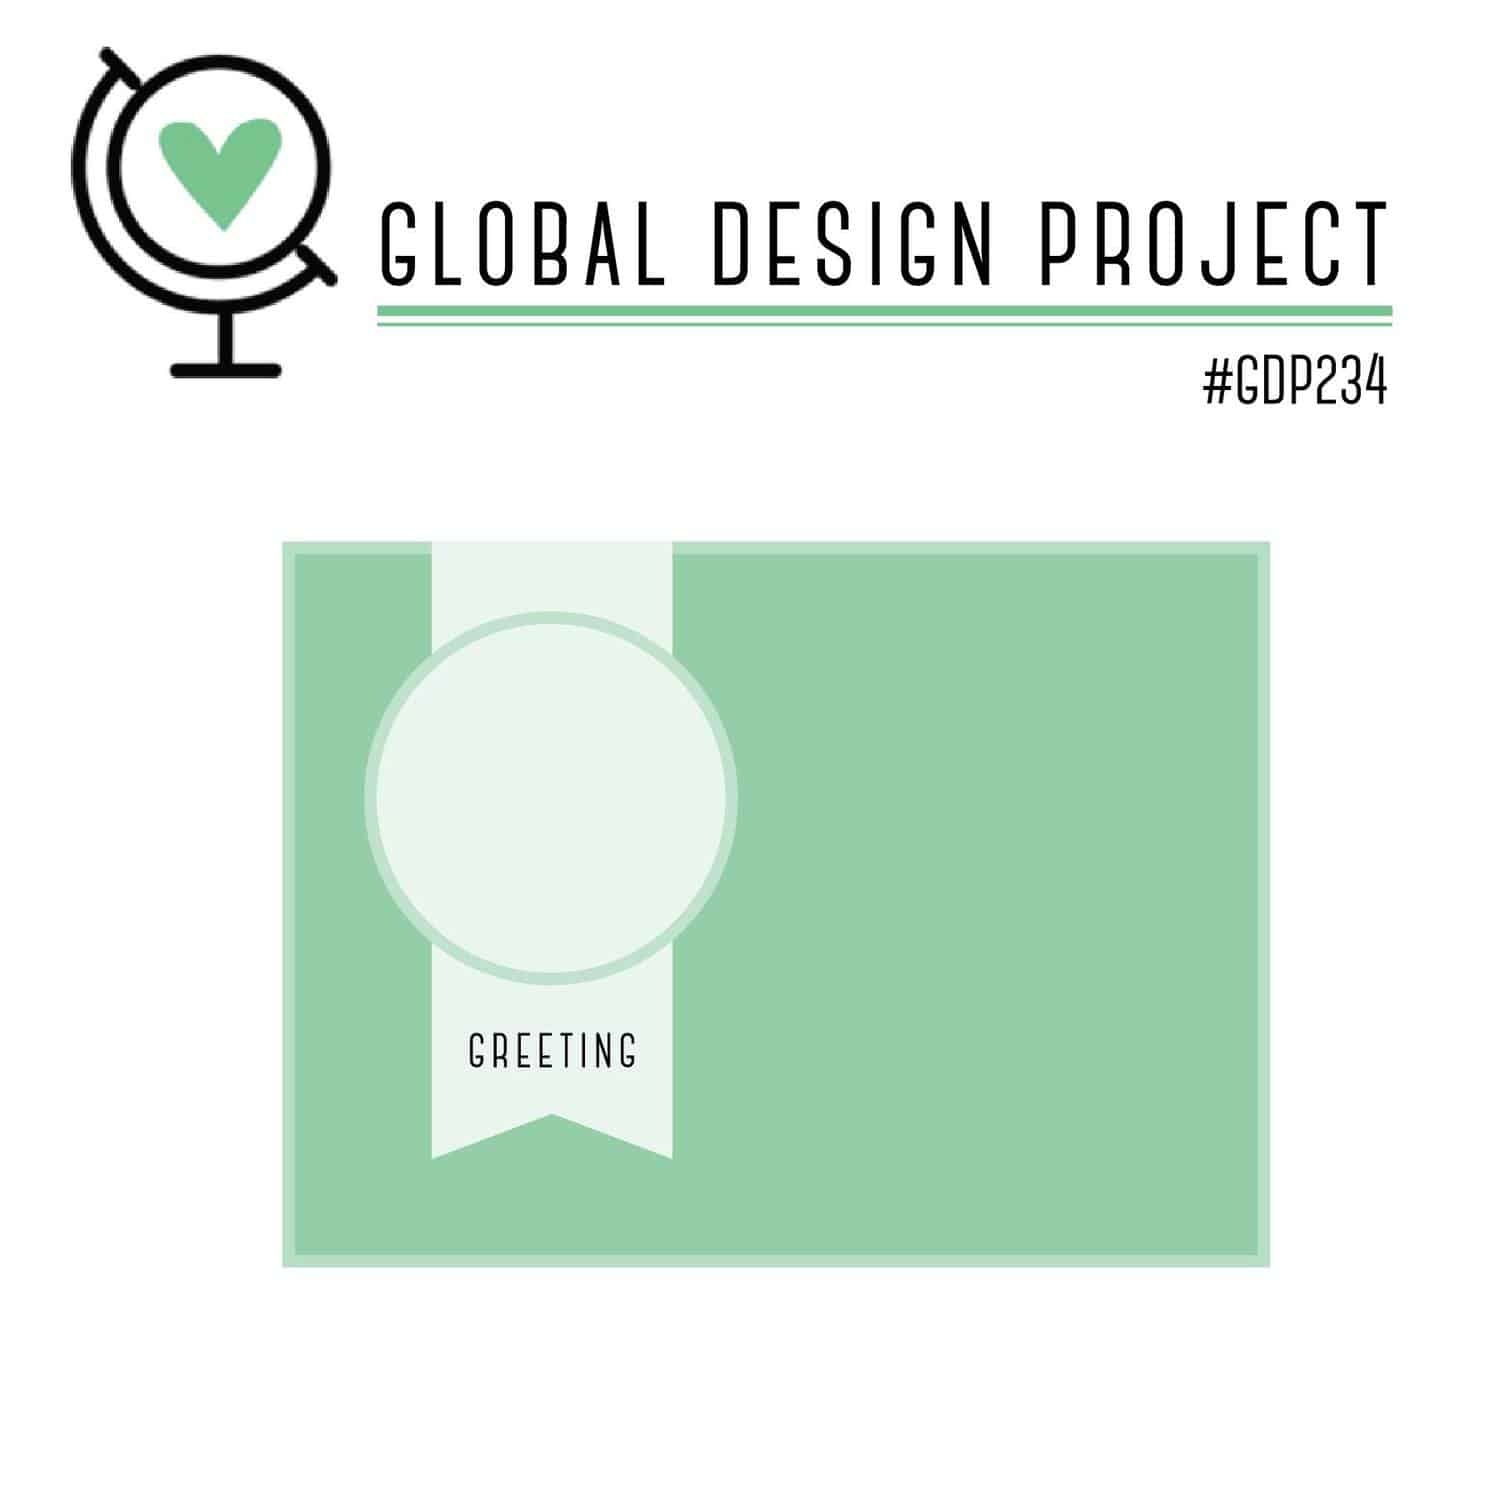 Global Design Project GDP234